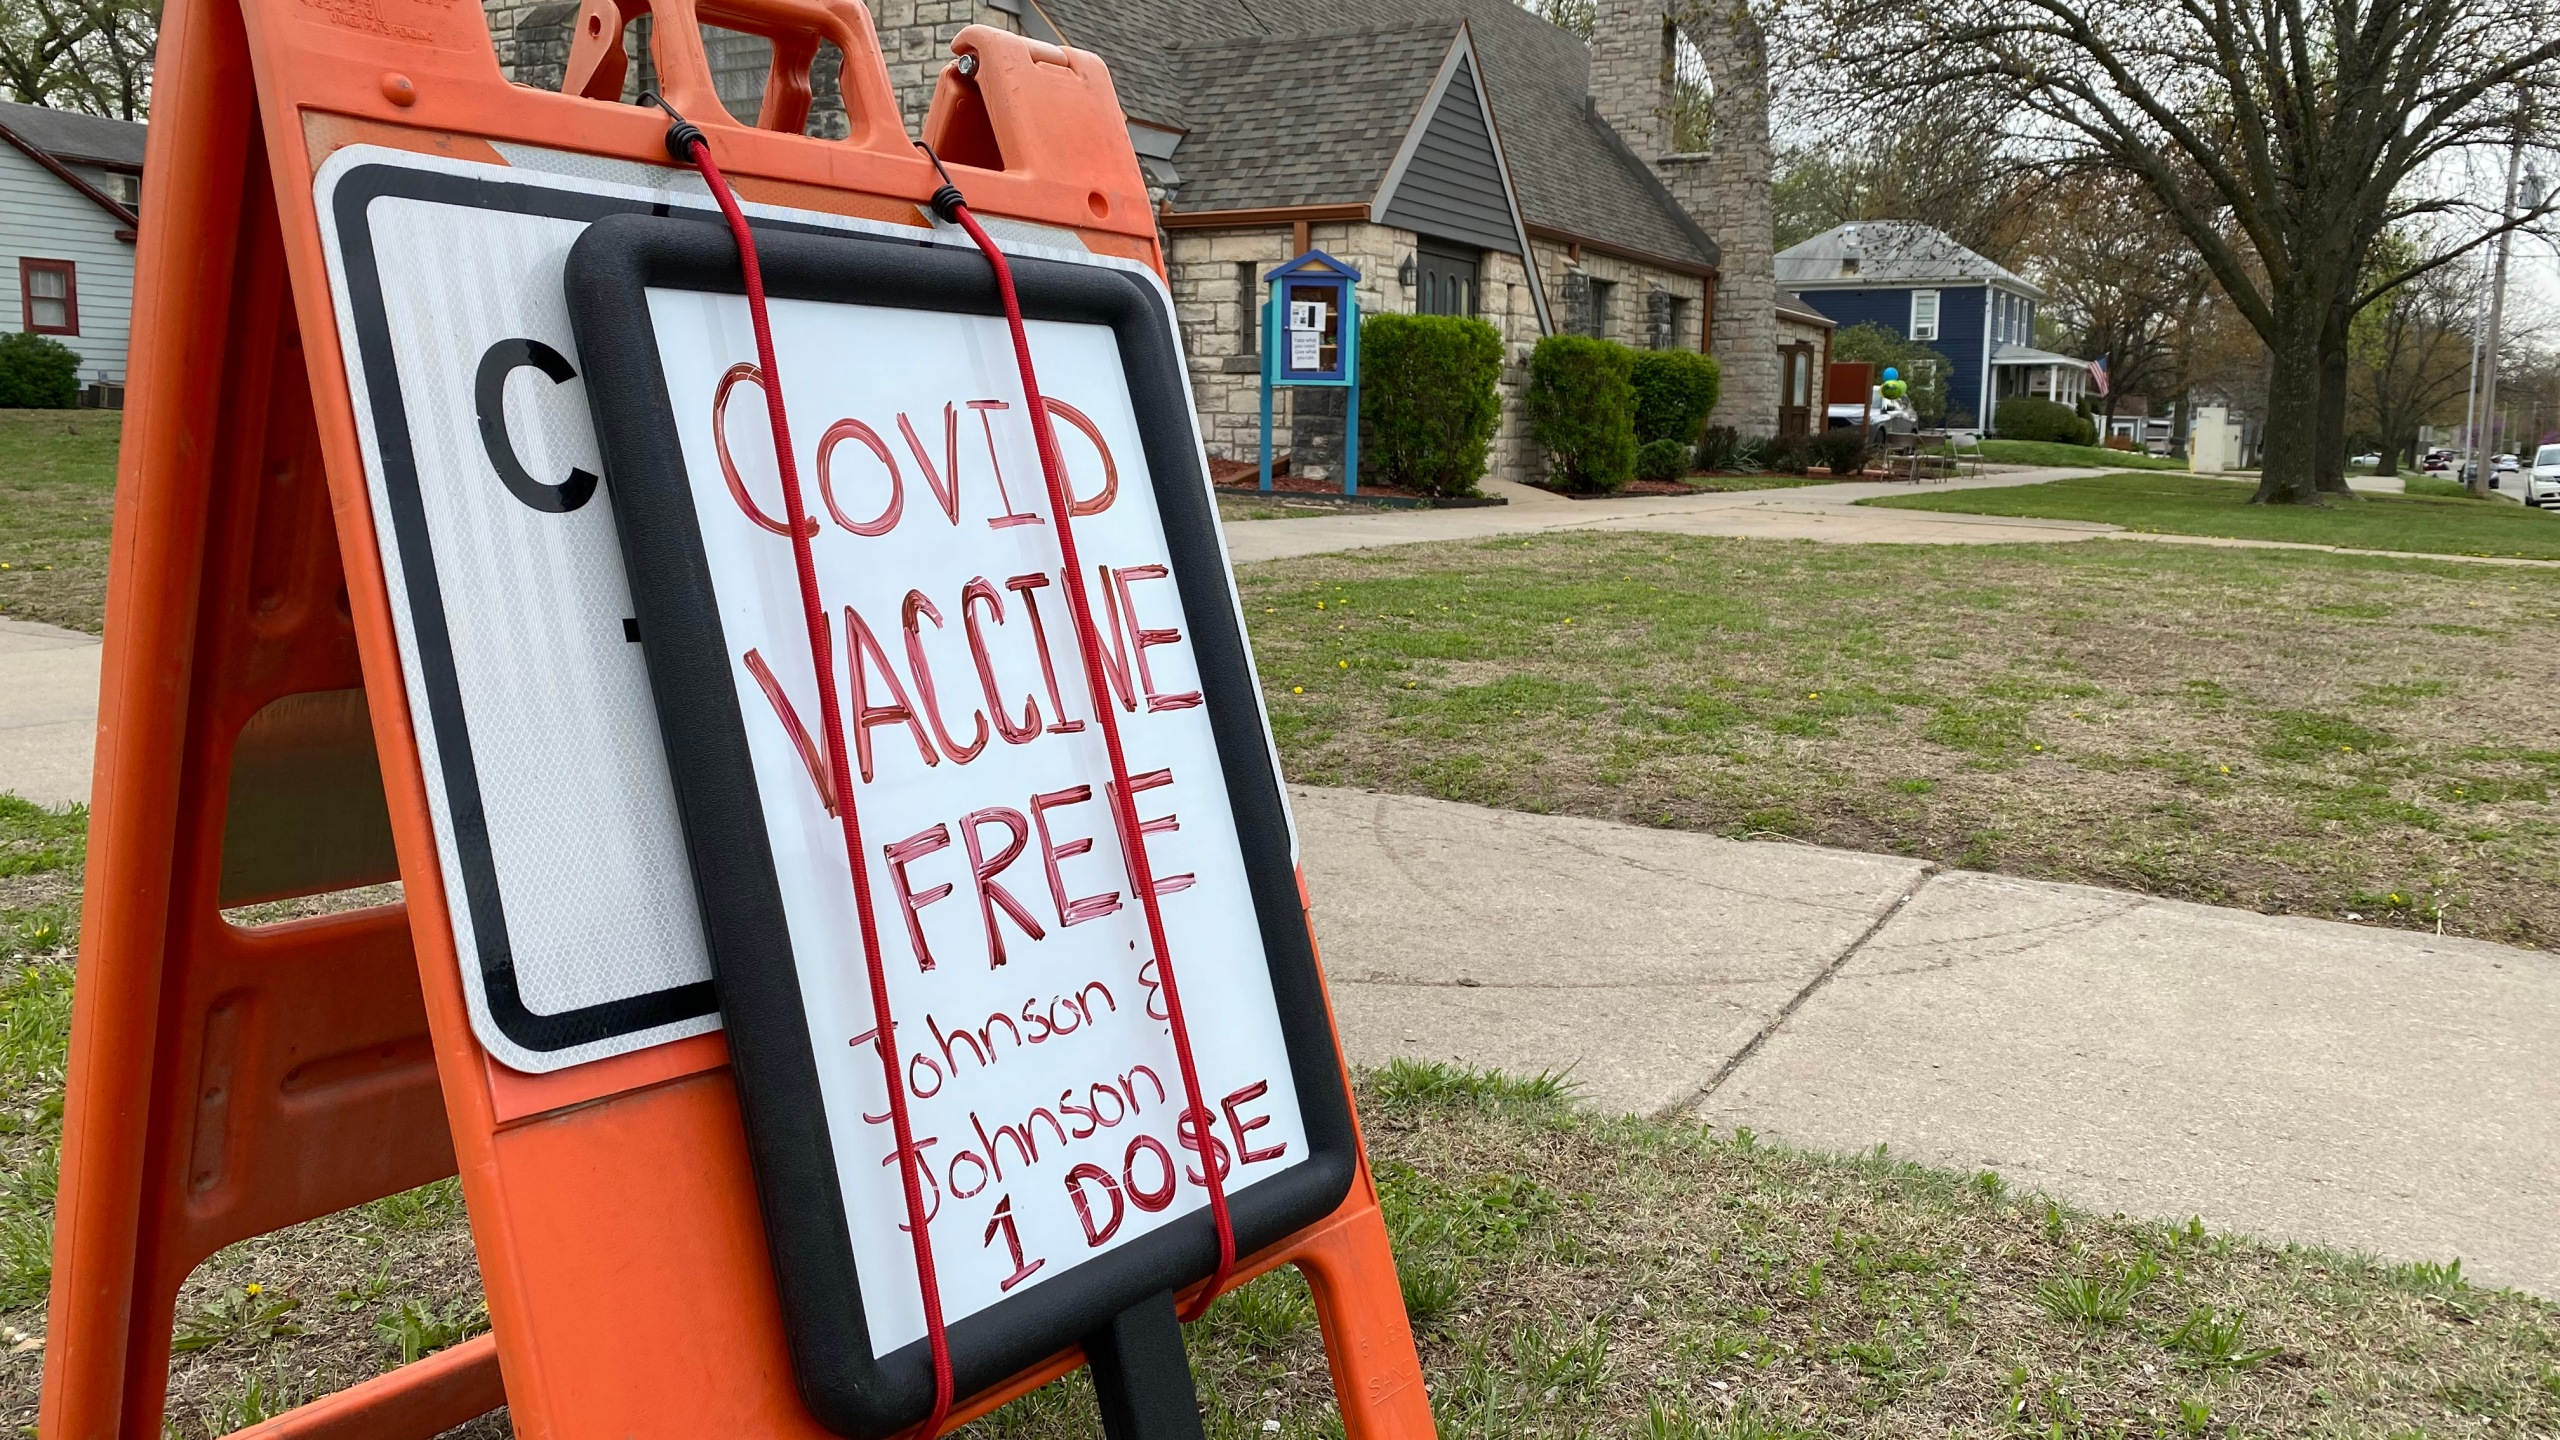 The Riley County Health Department held a mobile vaccination clinic on April 13, 2021 at the First Free United Methodist Church in Manhattan. KSNT News Photo/Noah Ochsner